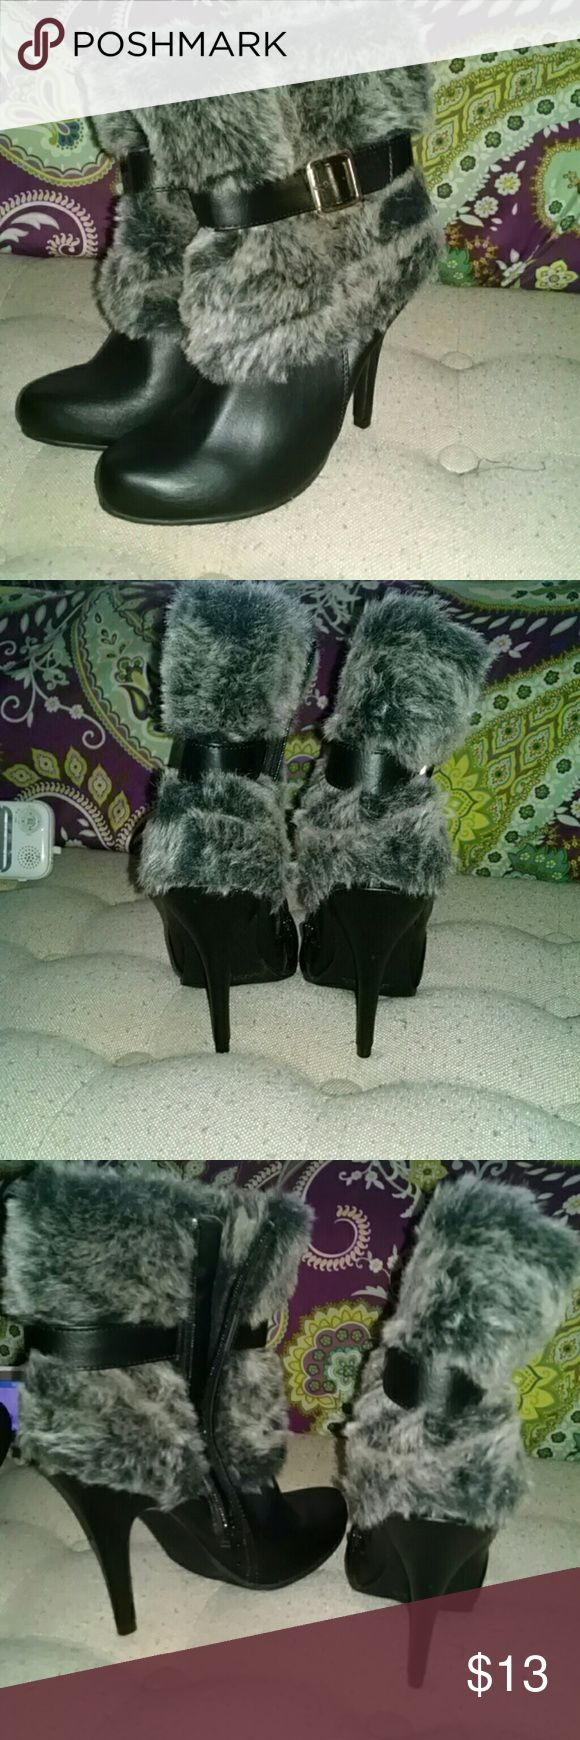 Fur Buckle Ankle Boots NWOT fur ankle boots with buckle detail, bought and never wore Forever 21 Shoes Ankle Boots & Booties